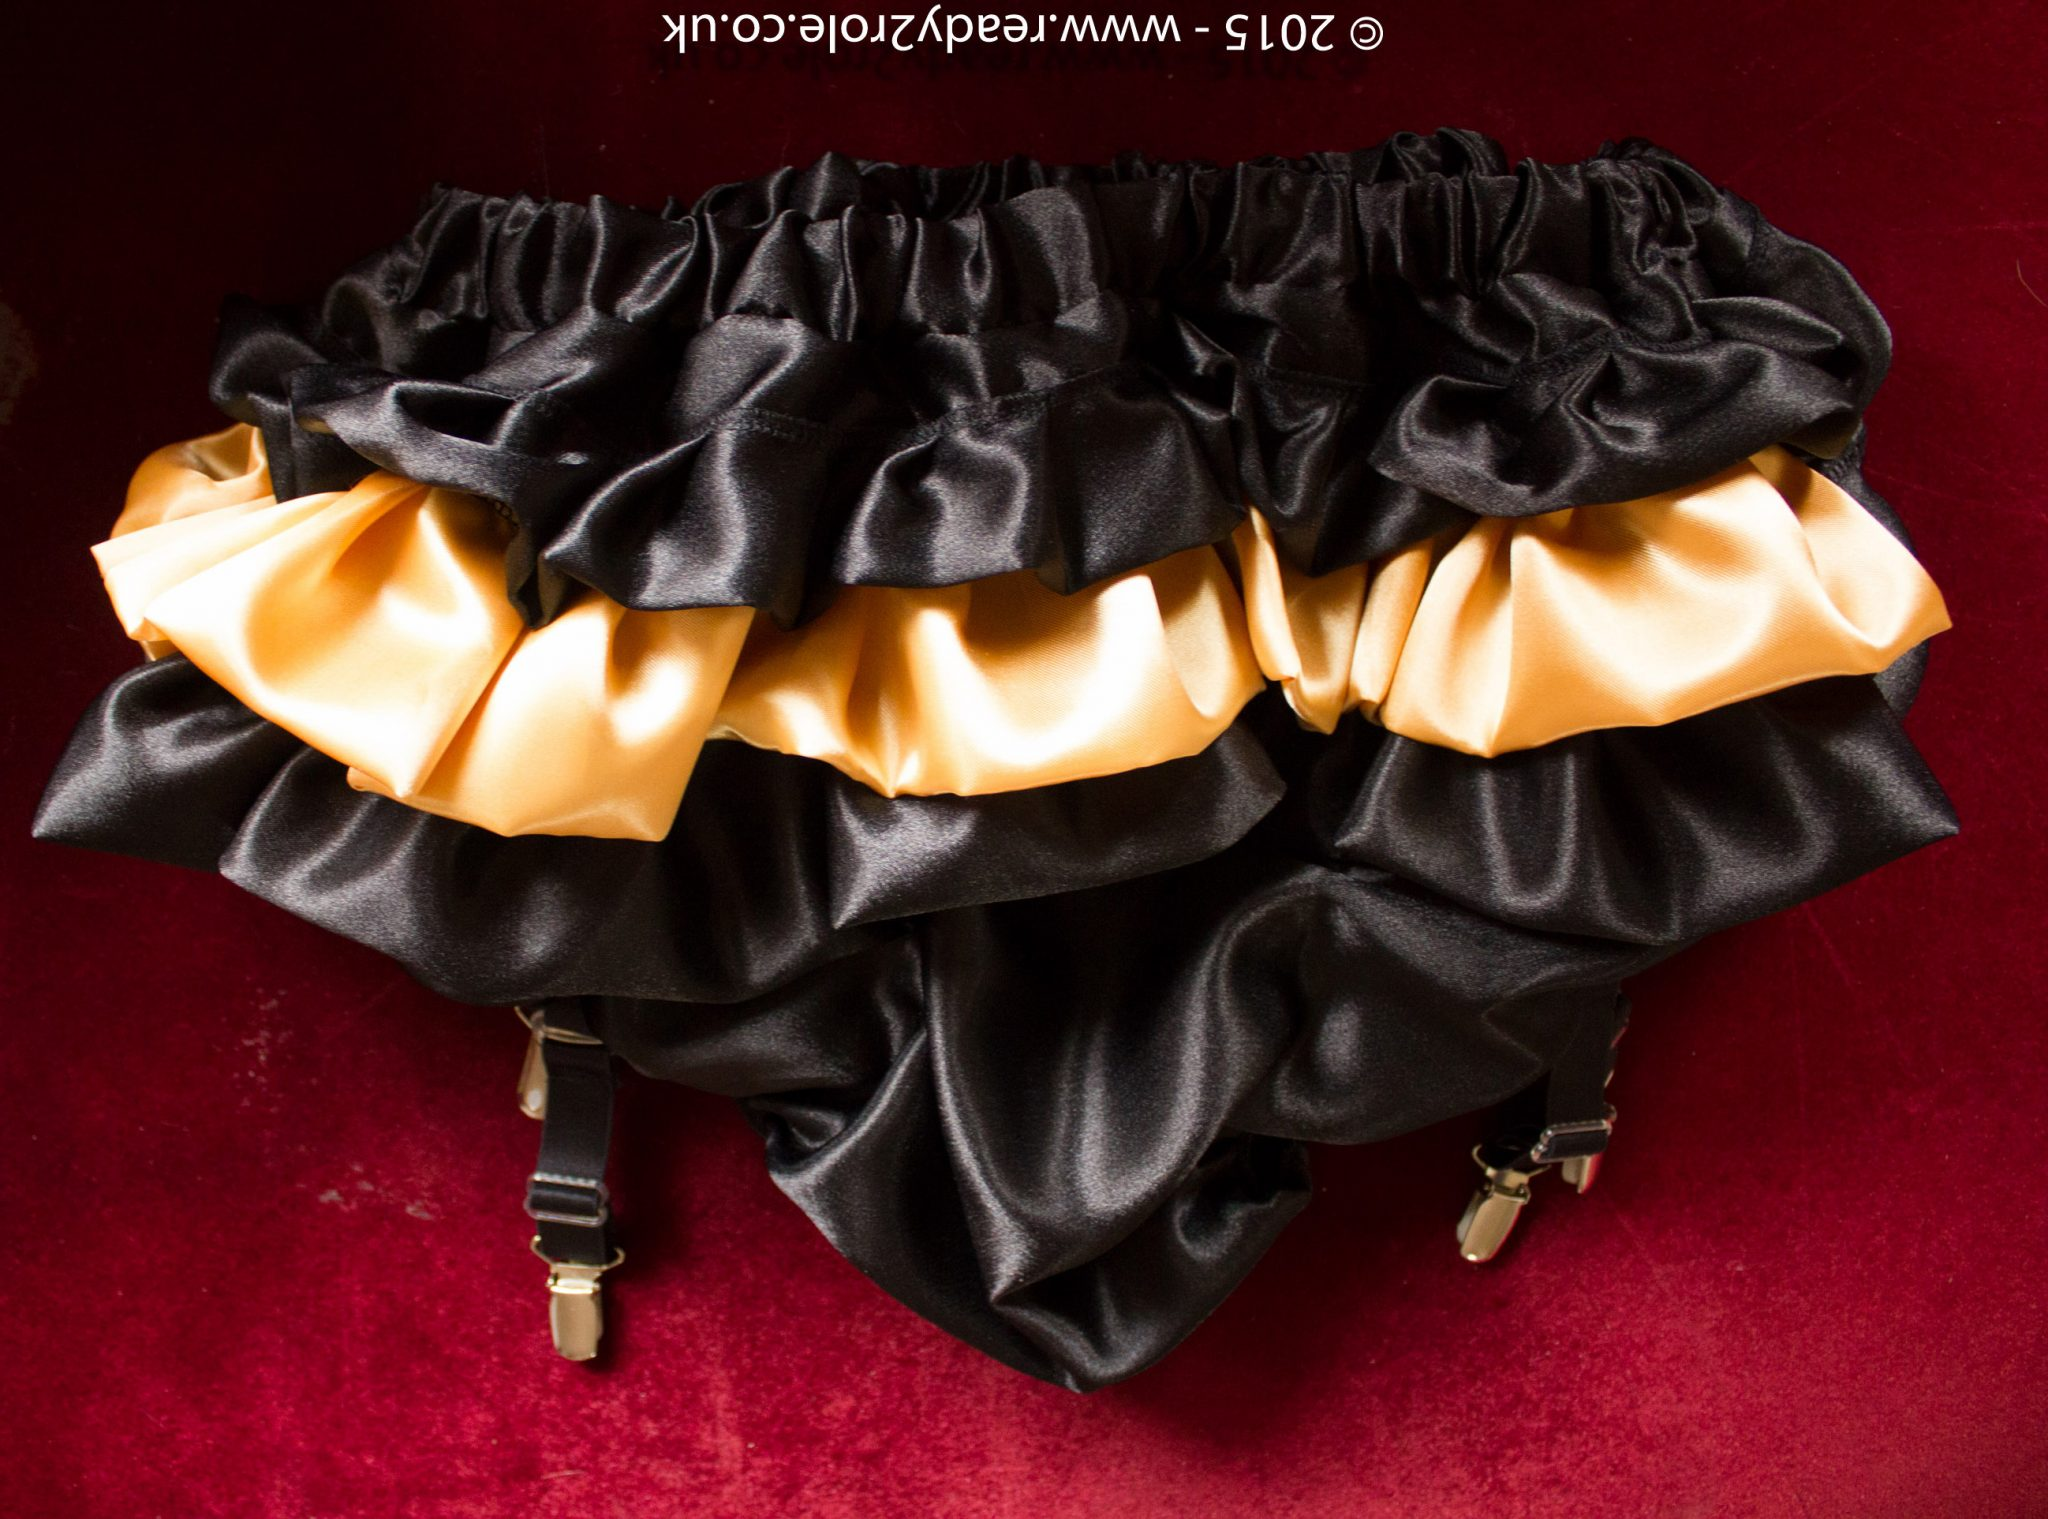 Sissy Satin Panties With Suspender Clips